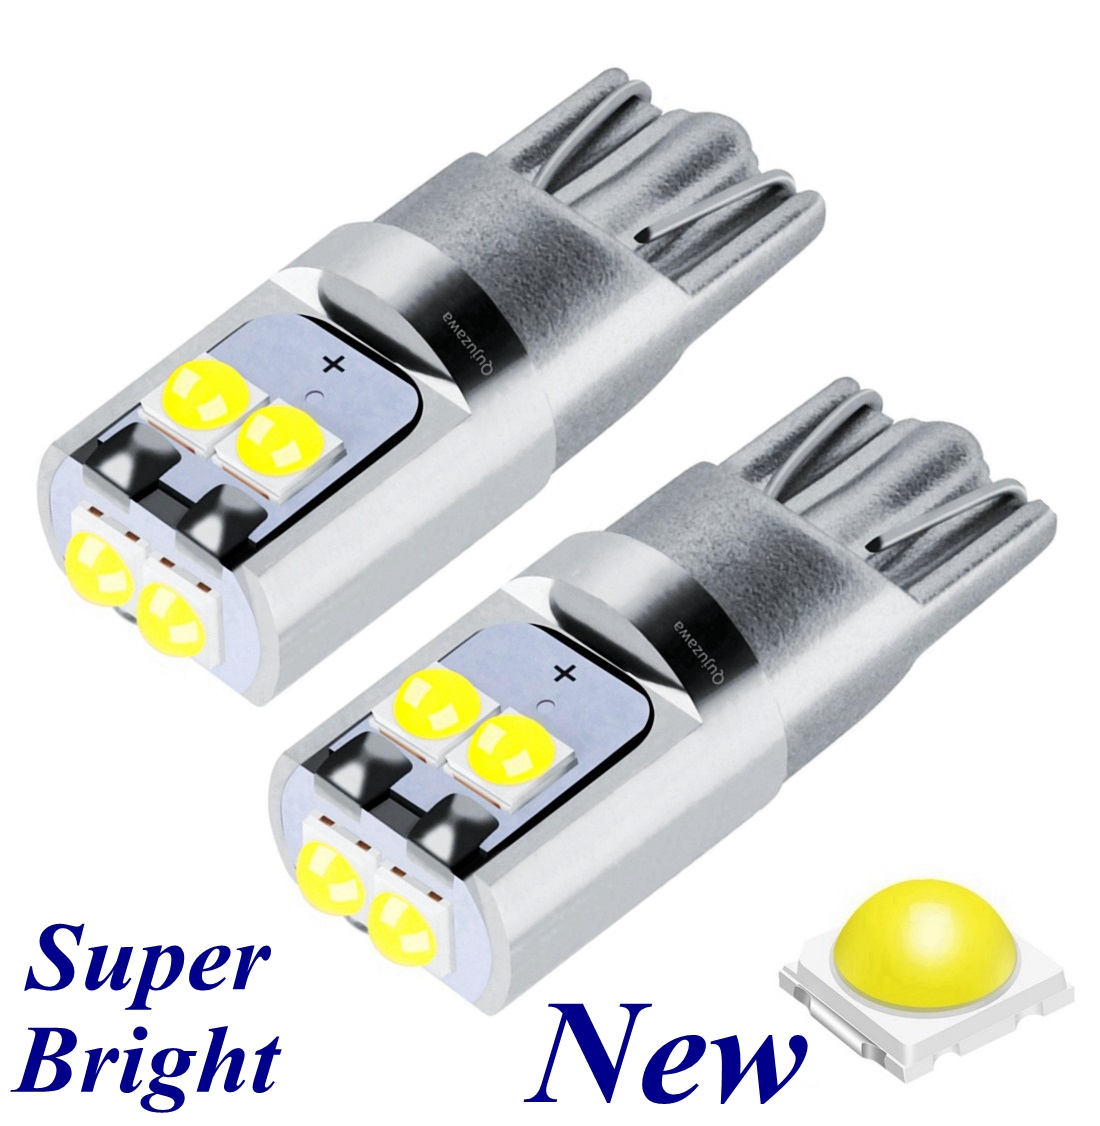 2PCS New T10 W5W Super Bright High Quality LED Wedge Parking Bulbs Car Dome Reading Lamps WY5W 168 501 2825 Auto Turn Side Light(China)